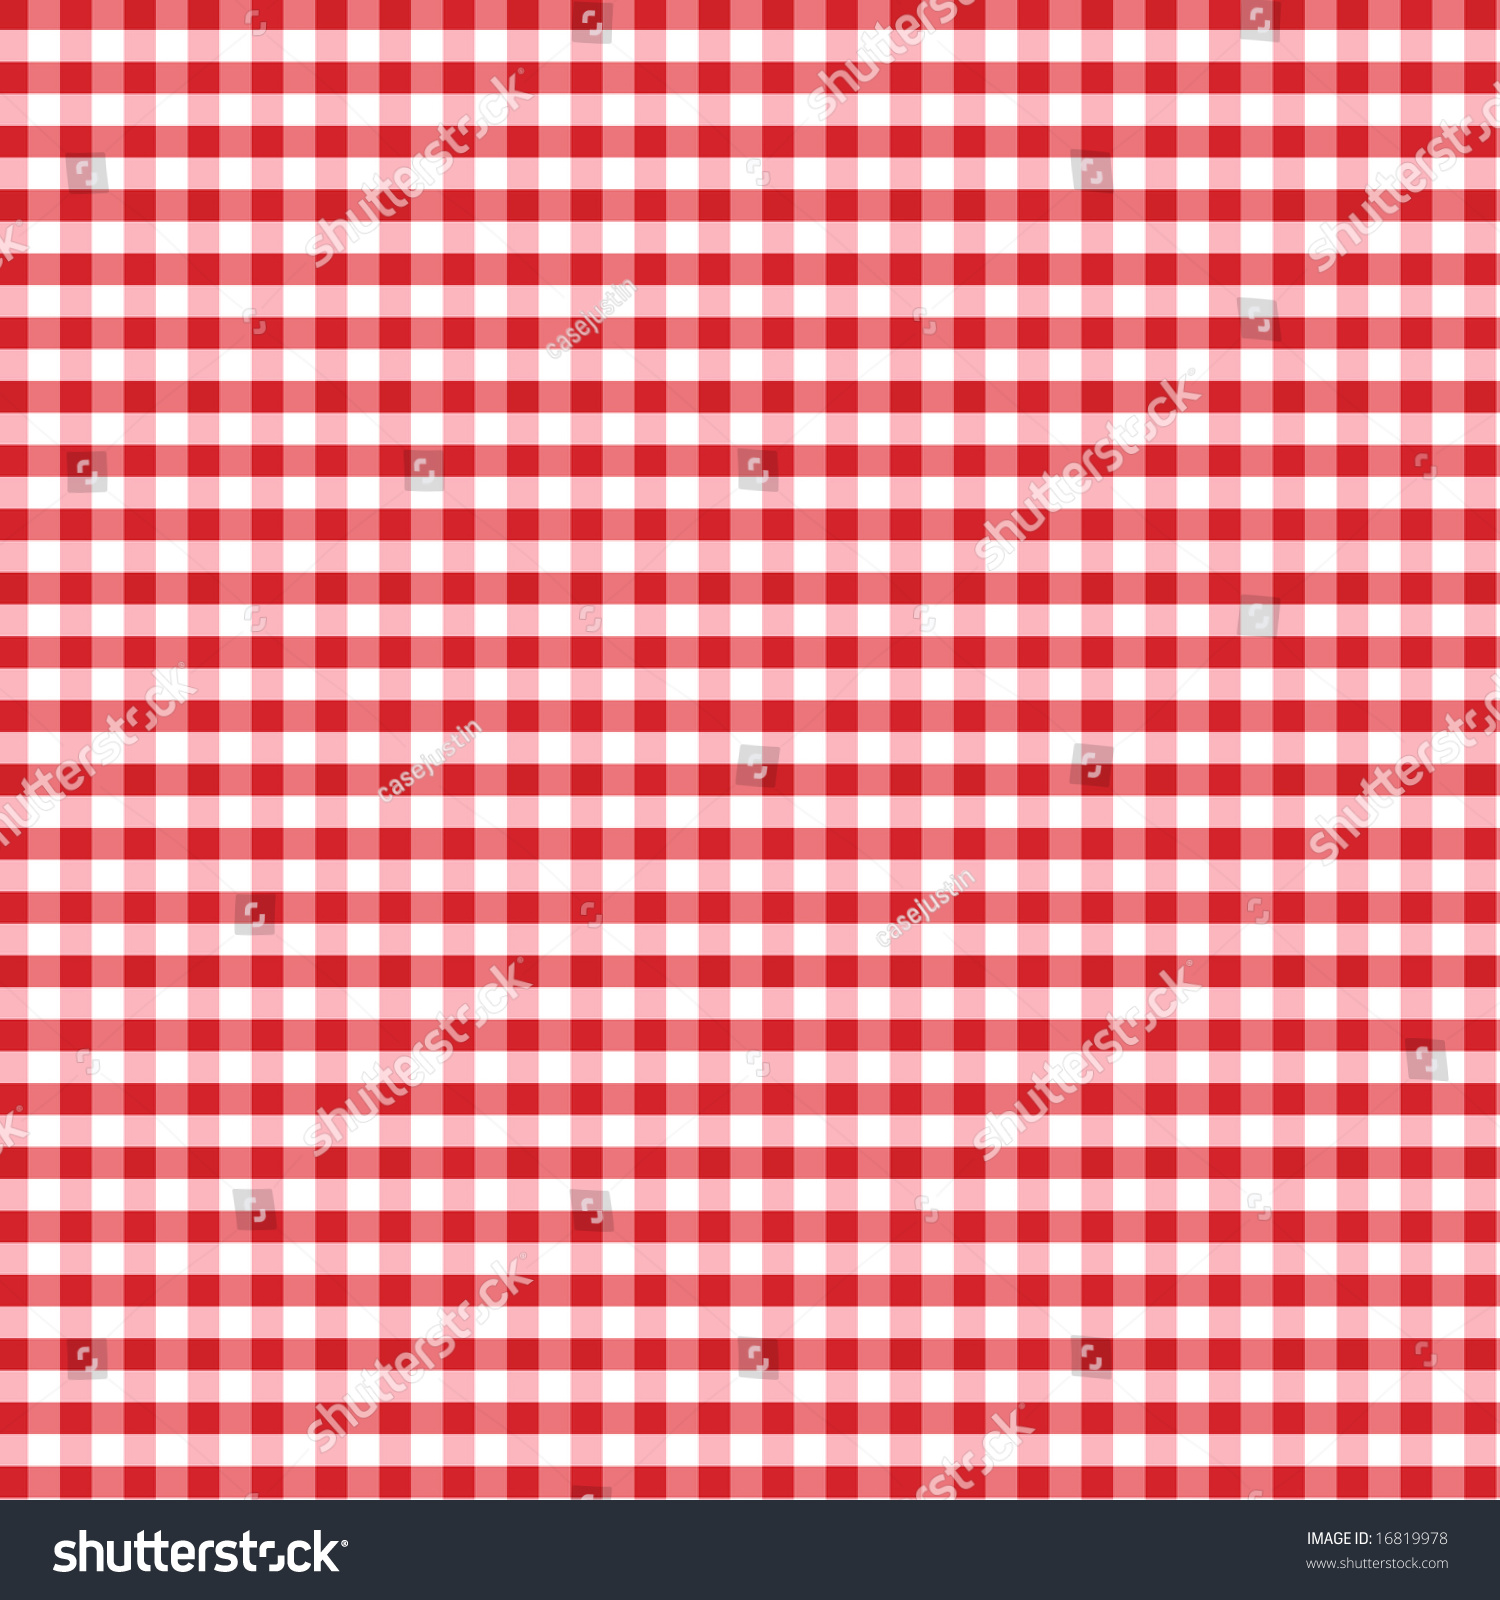 Gingham Check Pattern In Red And White For Tablecloths, Napkins, Curtains,  Home Decorating